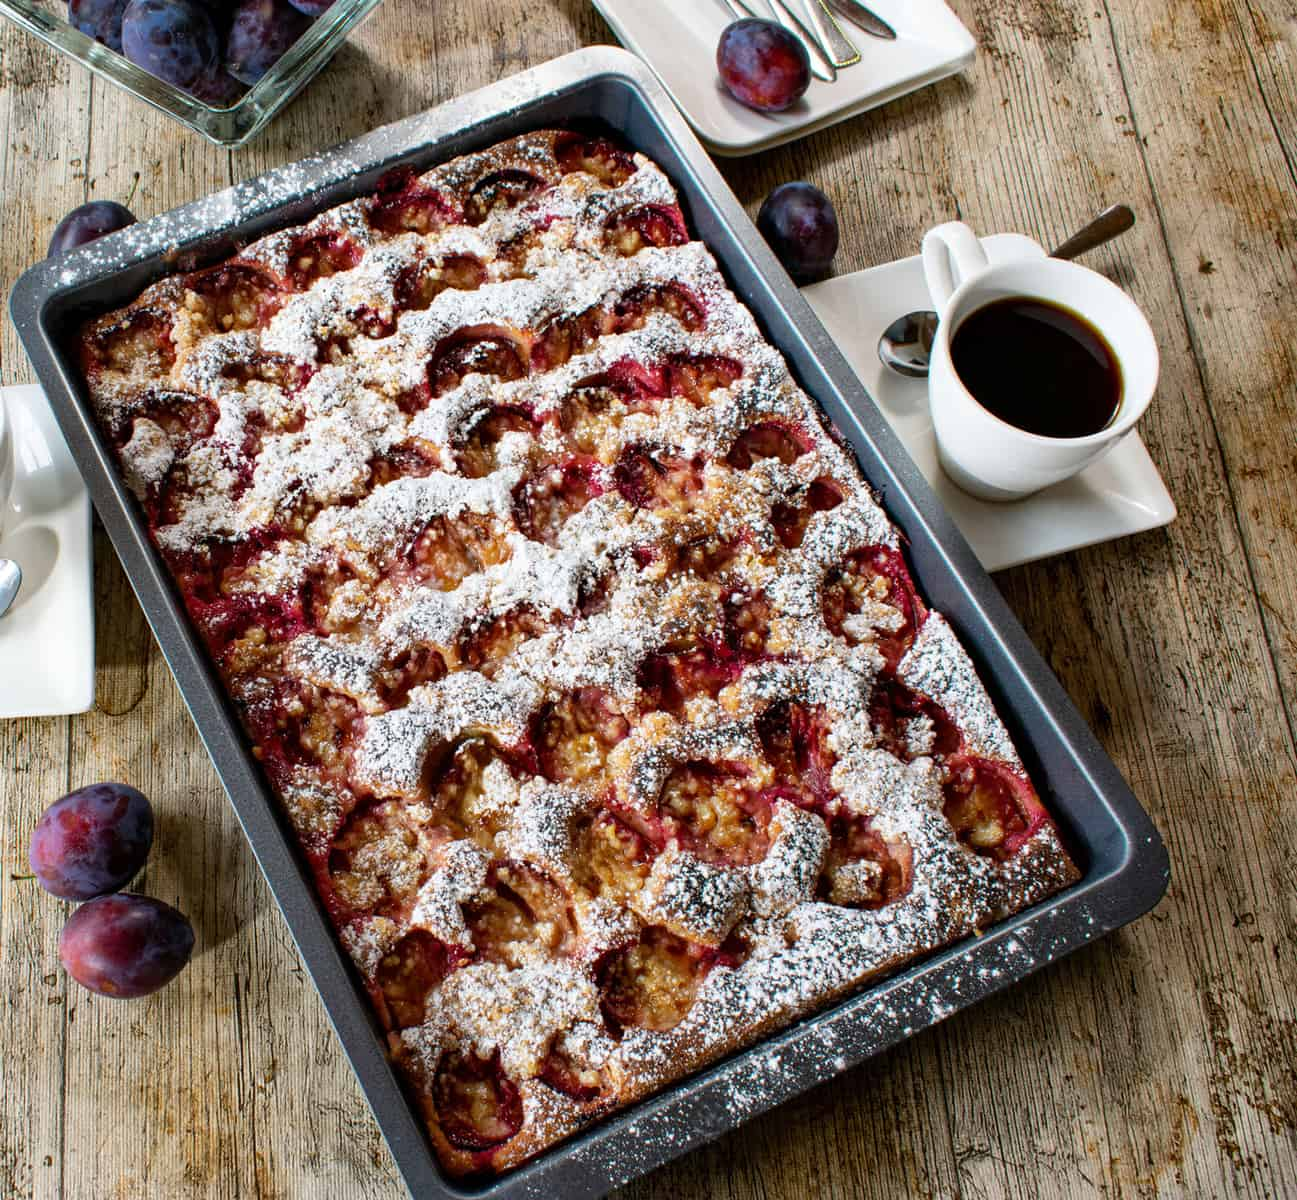 homemade german plum crumble cake on a baking sheet - warm and ready to eat